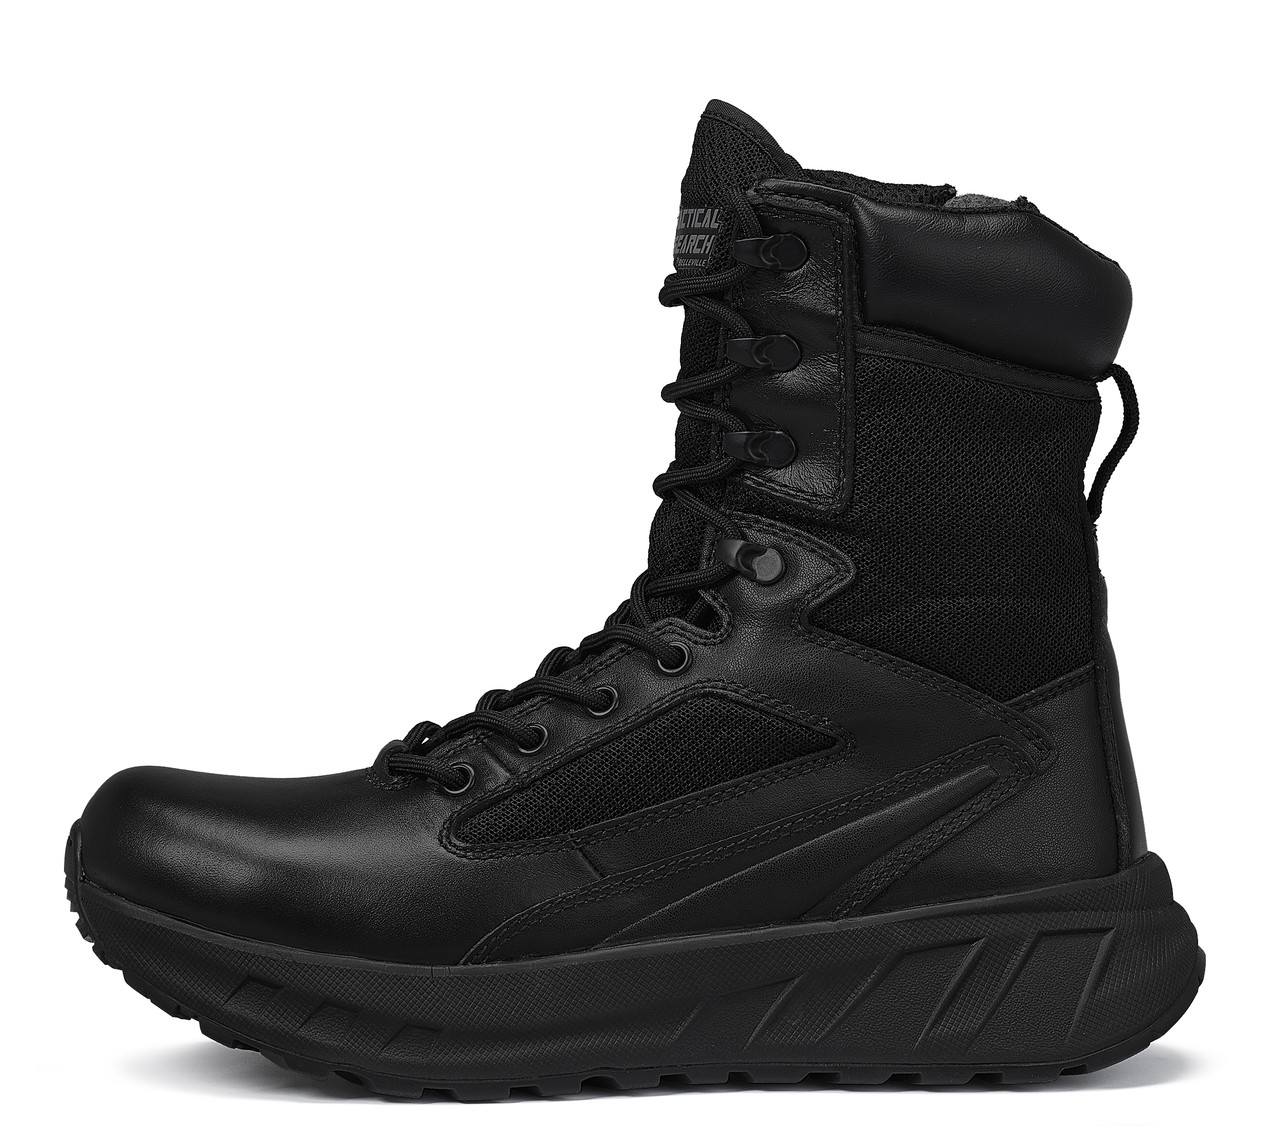 "BELLEVILLE TACTICAL RESEARCH FATT MAXX8Z 8"" SIDE-ZIP SHOCK ABSORBING BOOTS"